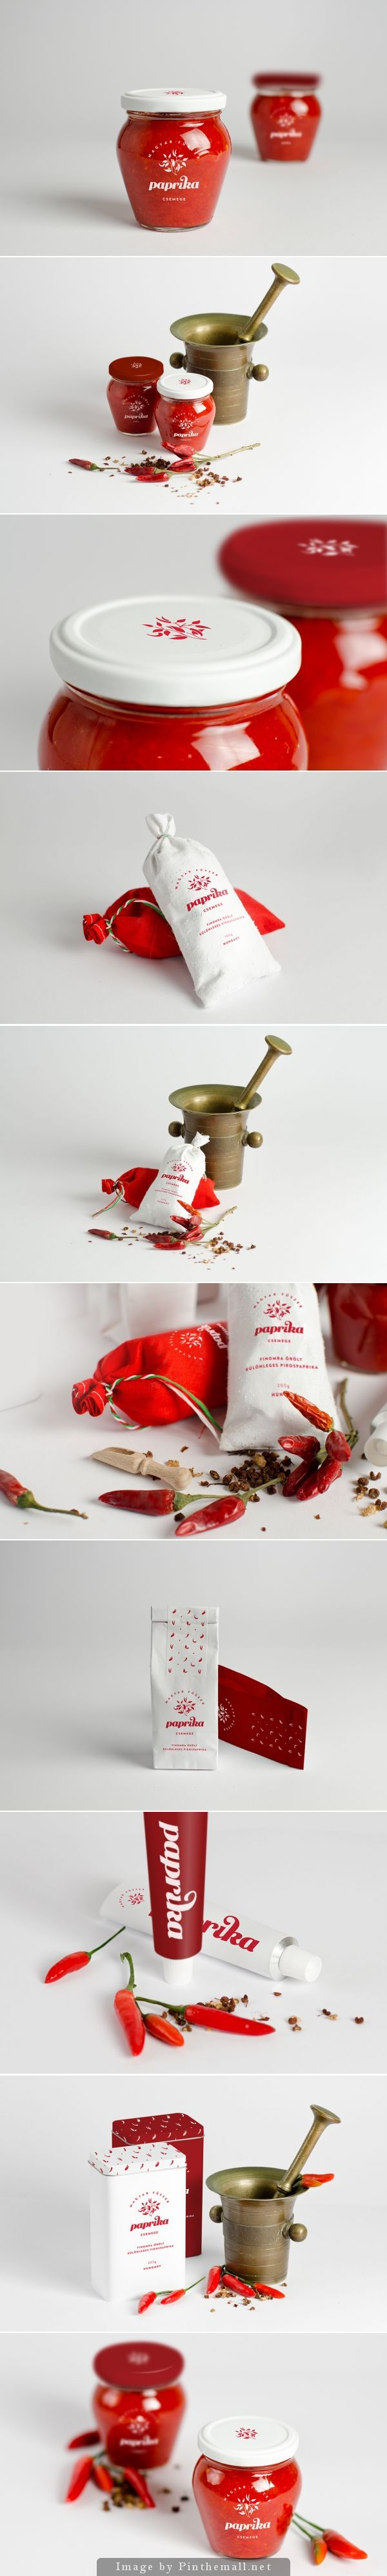 Paprika packaging design